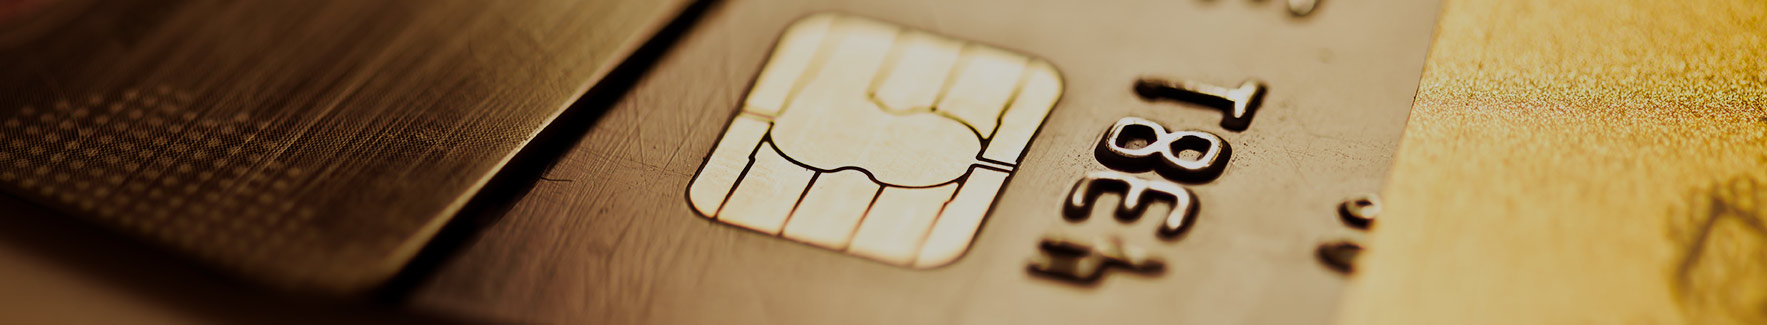 Nuvision Credit Card